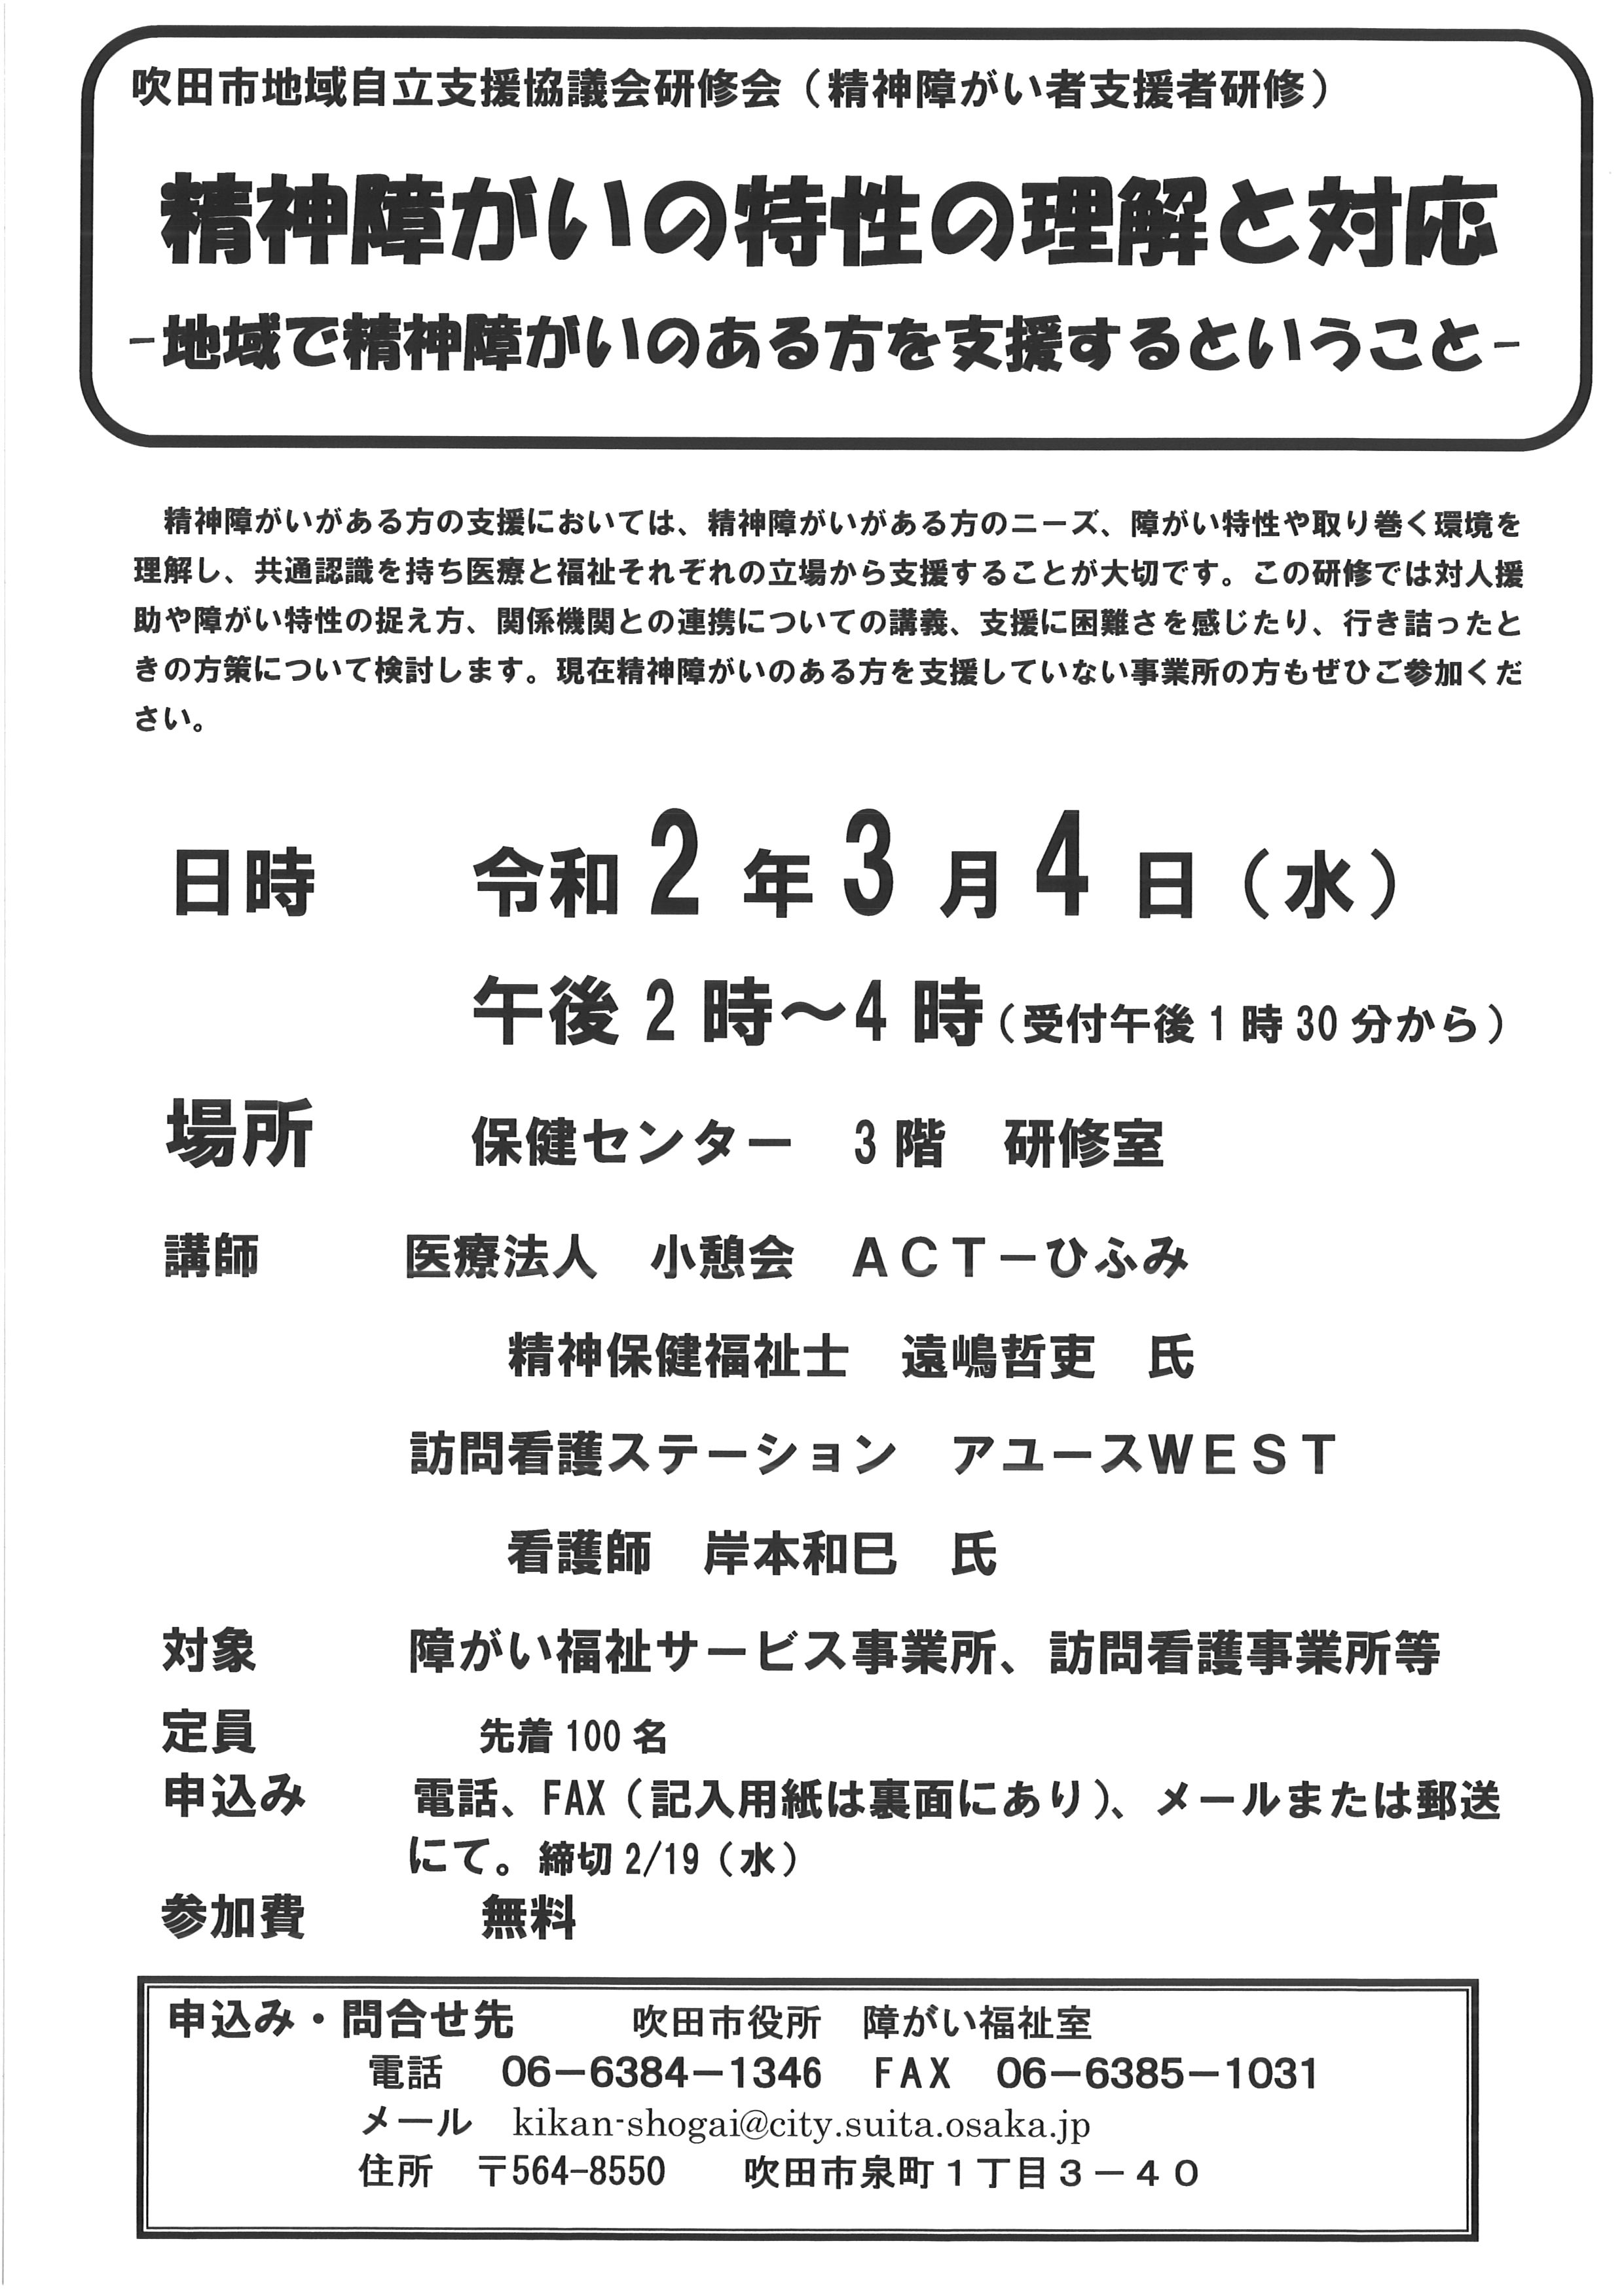 Act 医療